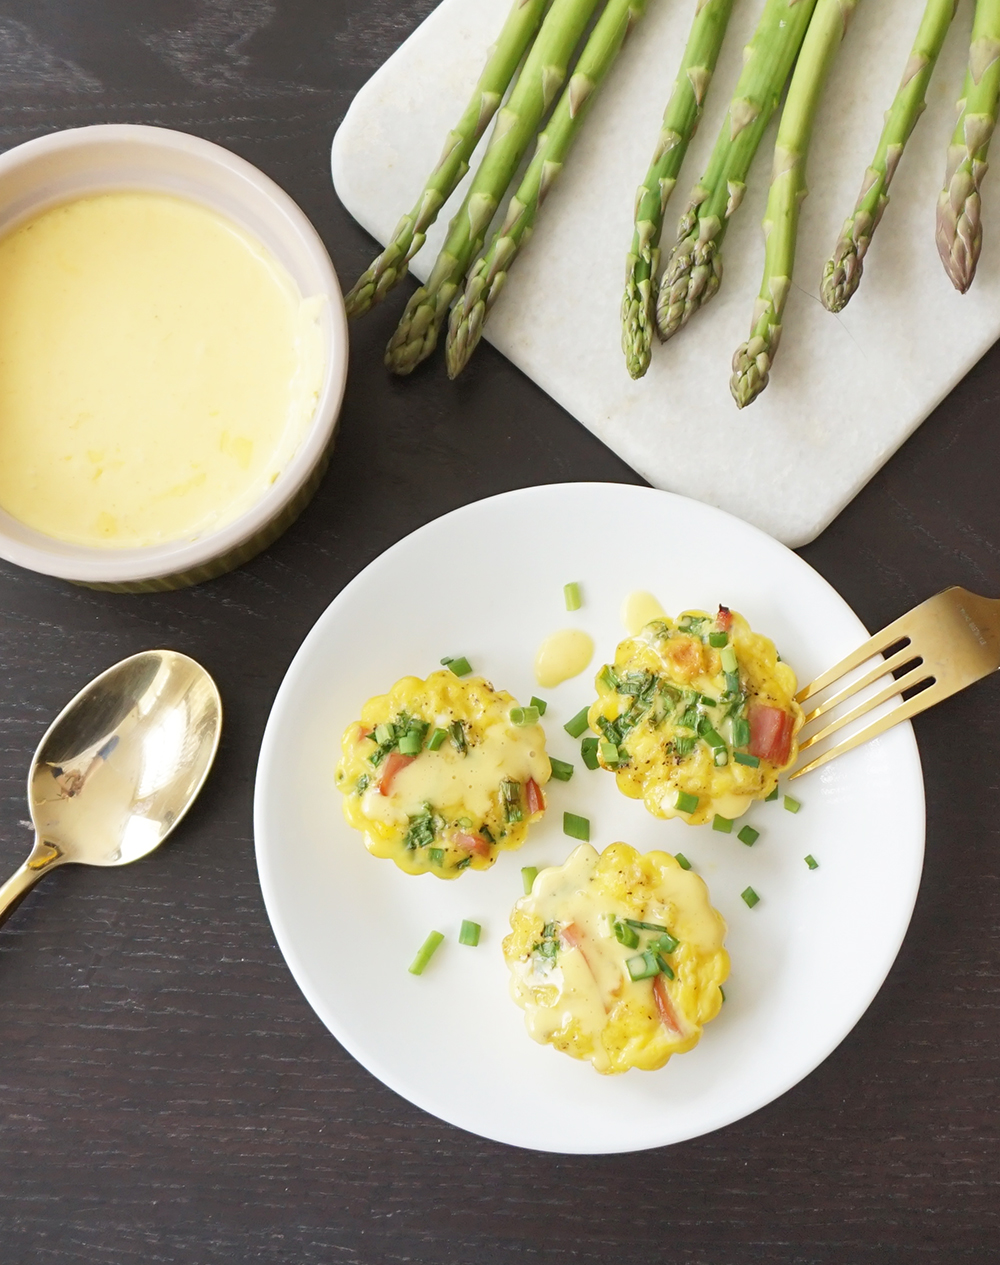 Eggs benedict cups with easy hollandaise sauce